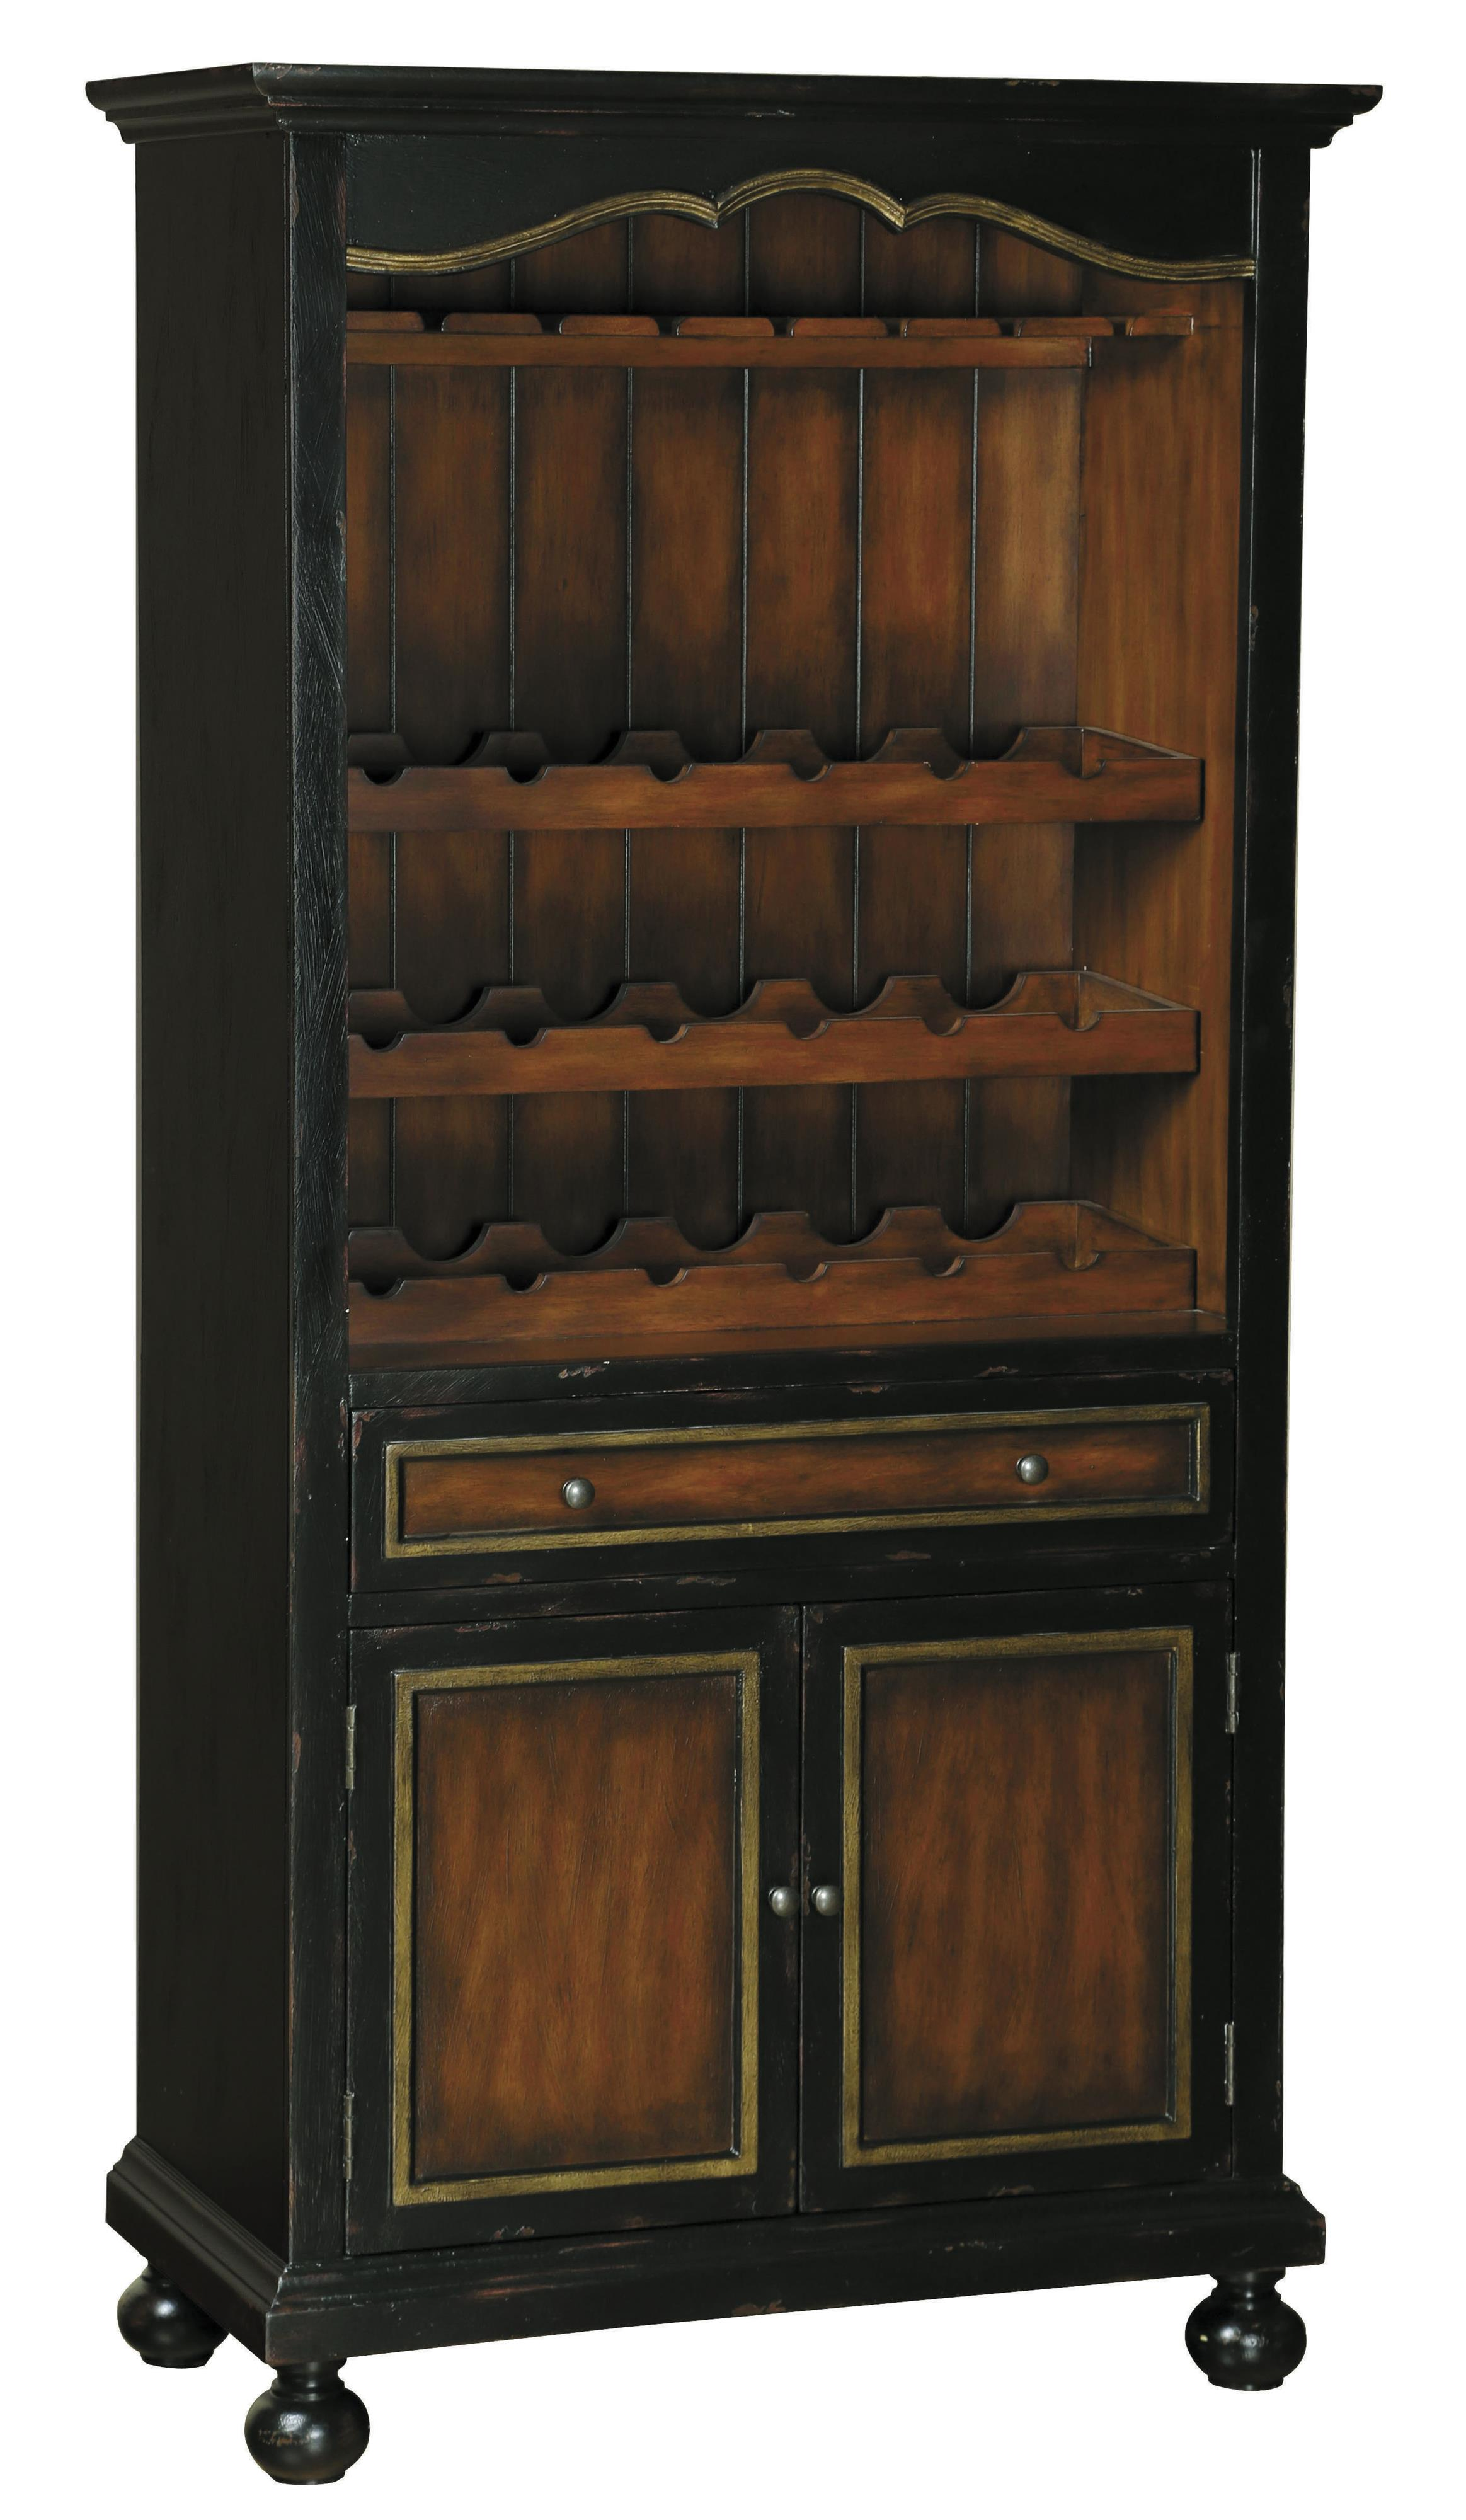 Pulaski Furniture Accents Corde Valle Wine Cabinet - Item Number: 675000